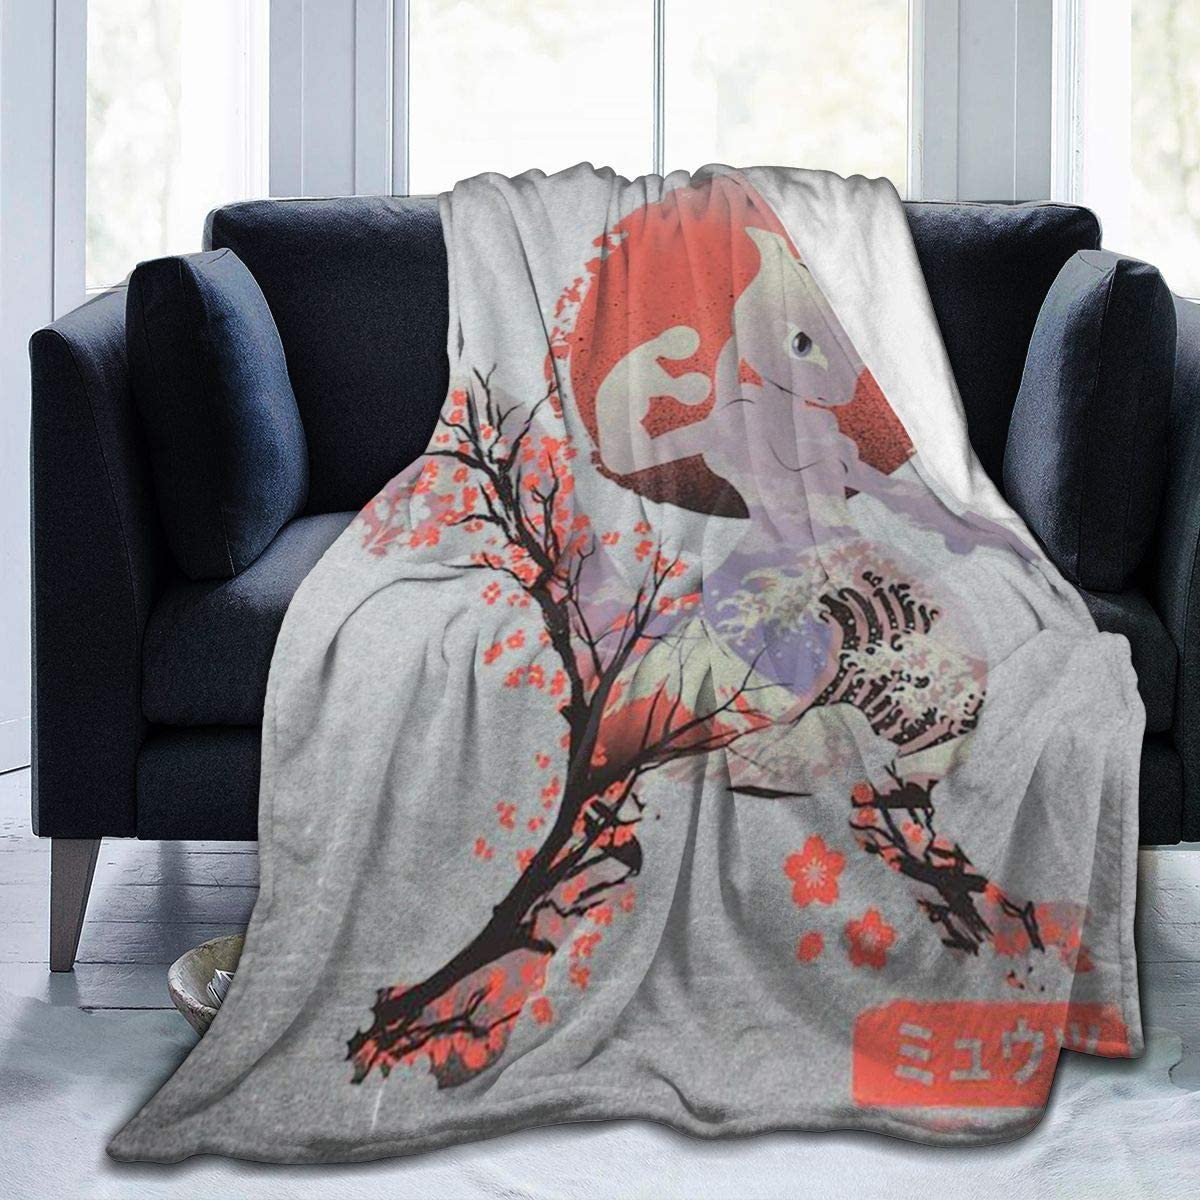 Poke-mon Ukiyo Mewtwo Fleece Blanket Ultra-Soft Lightweight All Seasons Fit Bed Couch Chair Office Flight and Outdoors